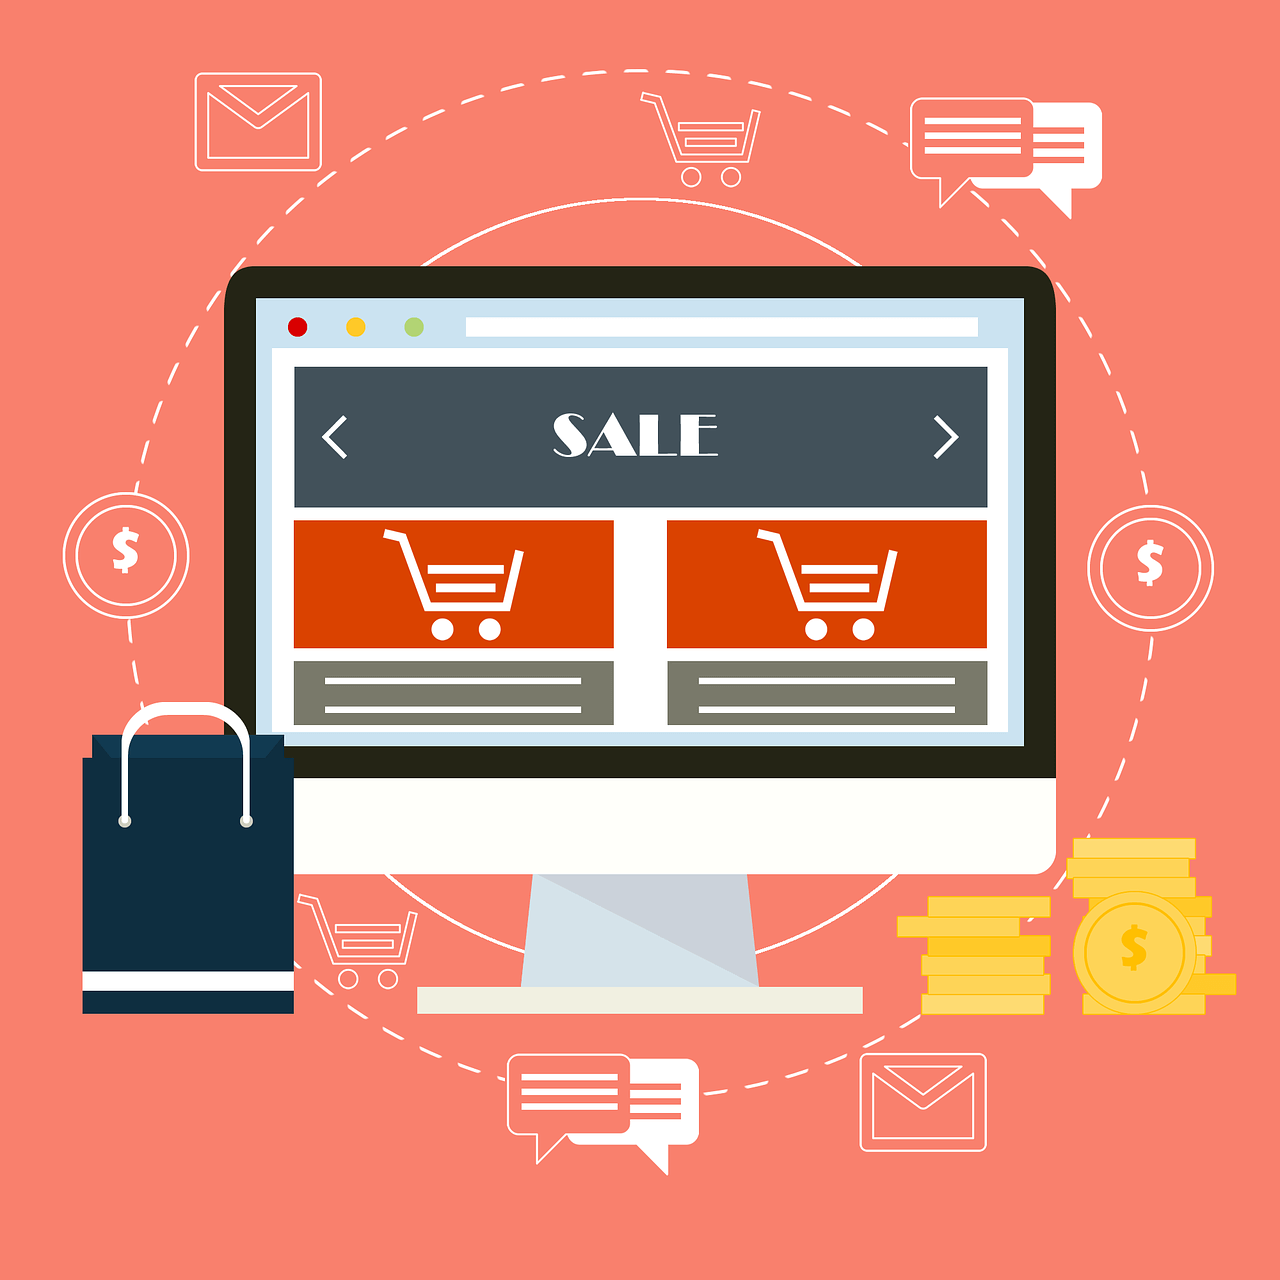 Conversational eCommerce & Keeping Your Business Up-To-Date